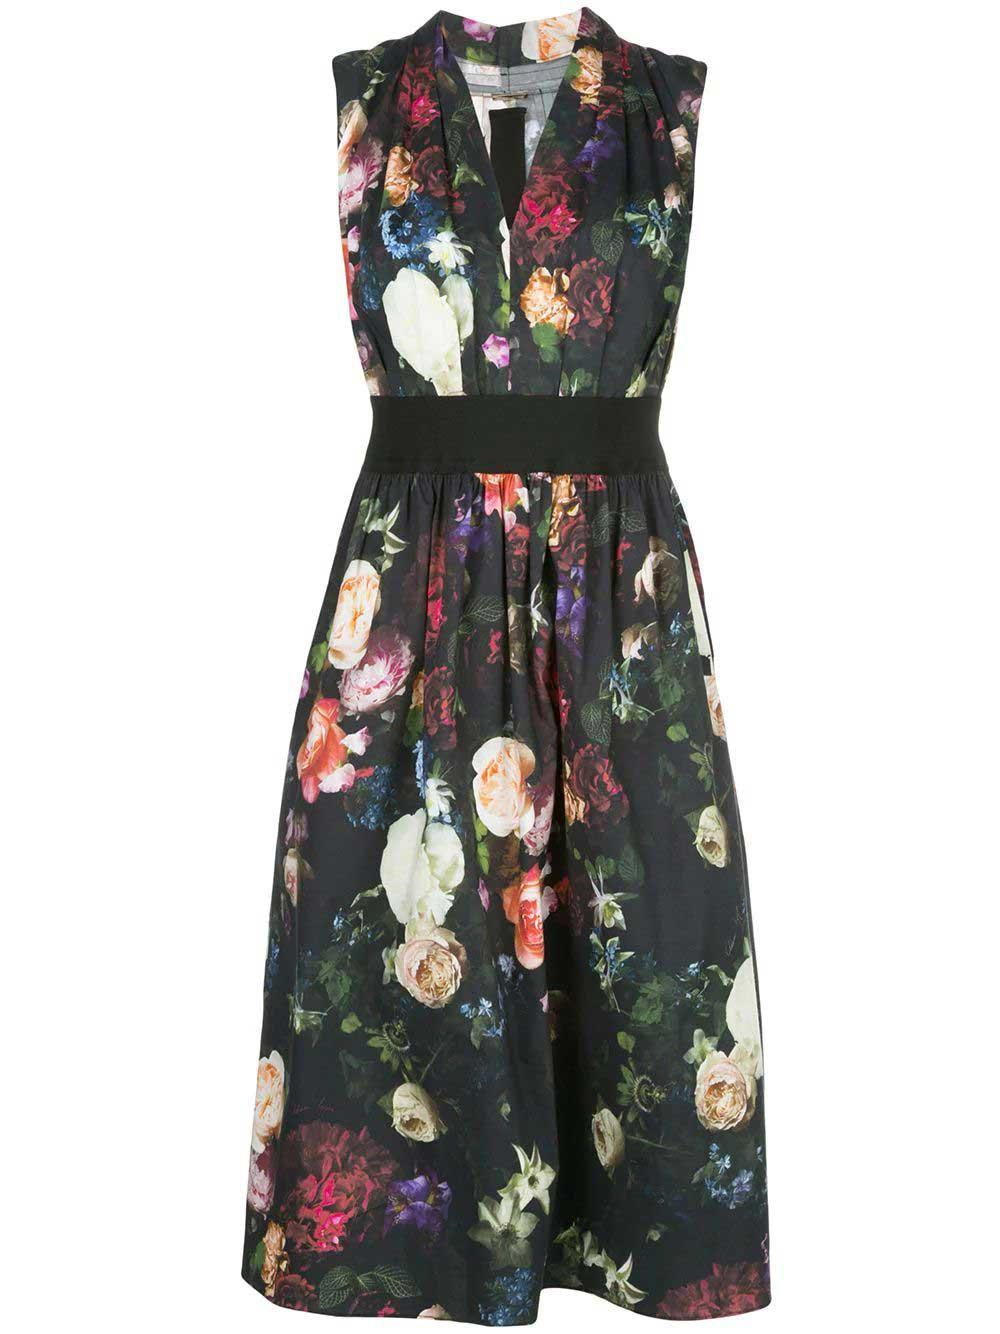 Sleeveless Floral Print Gathered Waist Dress Item # R20728PP